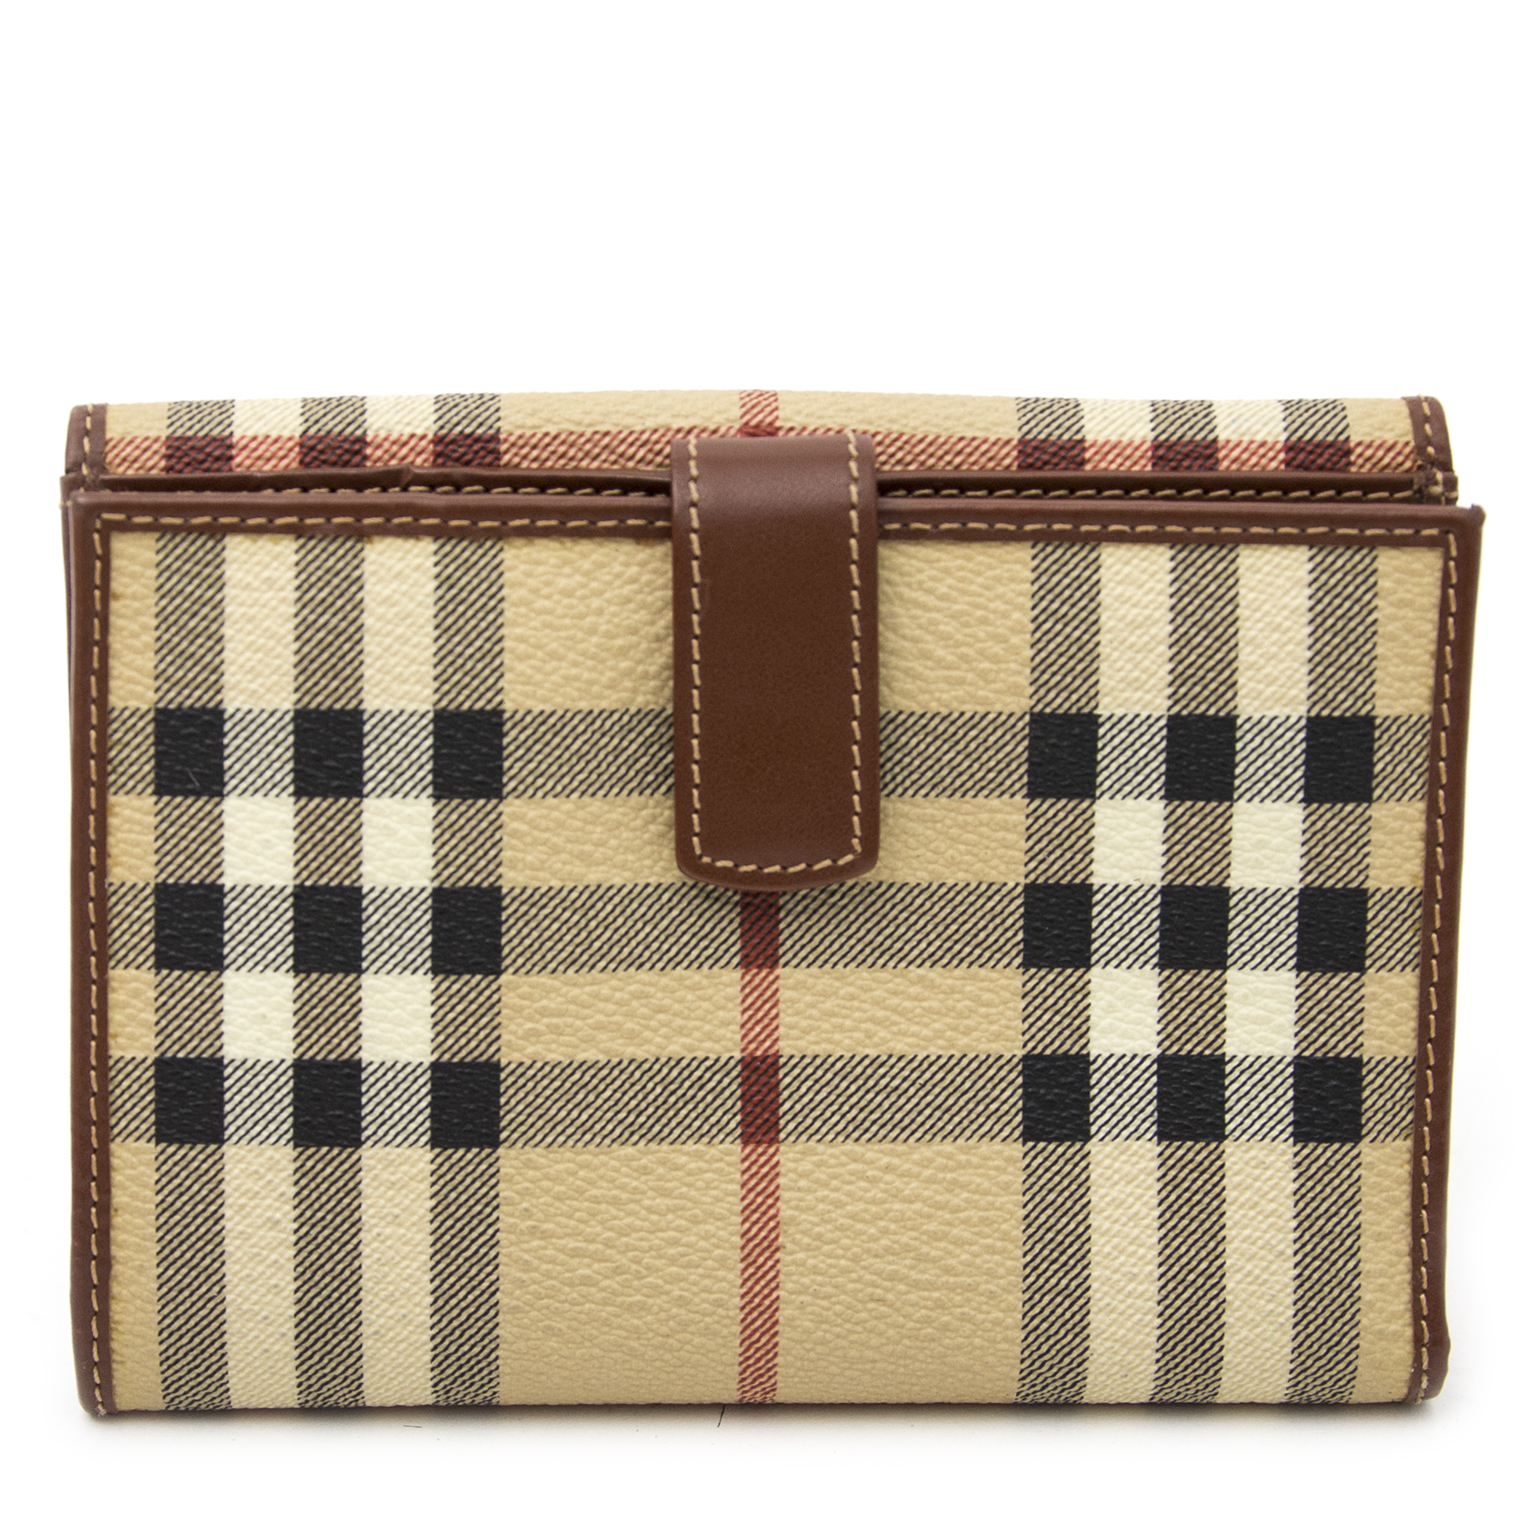 Vintage Burberry Nova Check monogram wallet for the best price at Labellov webshop. Safe and secure online shopping with 100% authenticity. Vintage Burberry Nova Check monogramme porte monnaie pour le meilleur prix.